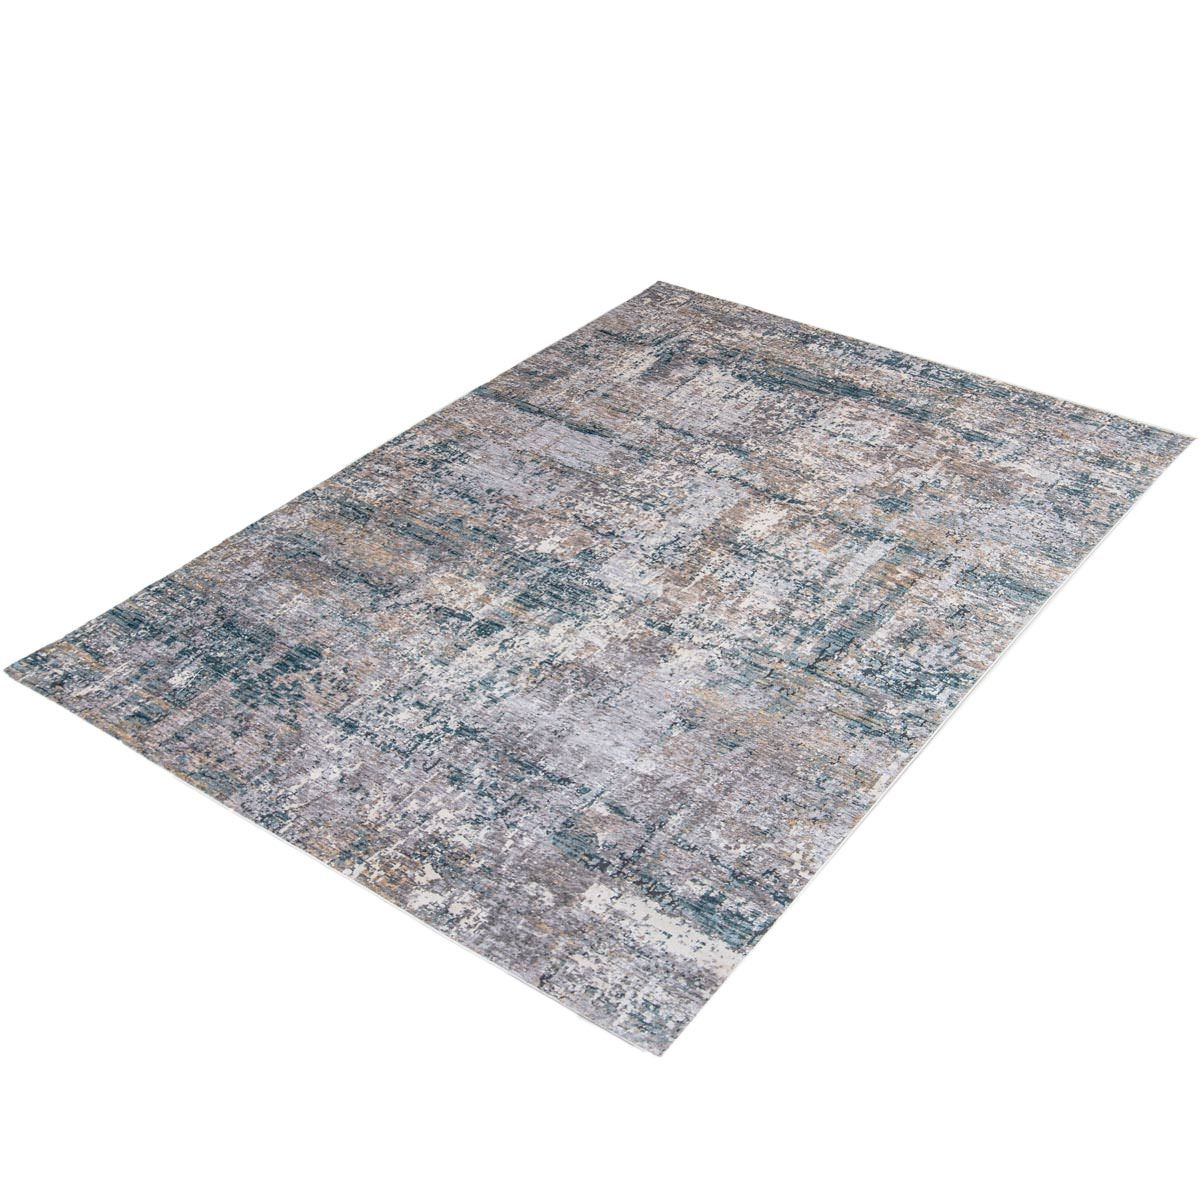 Miami Rug 03 Yellow/Blue/Grey 7